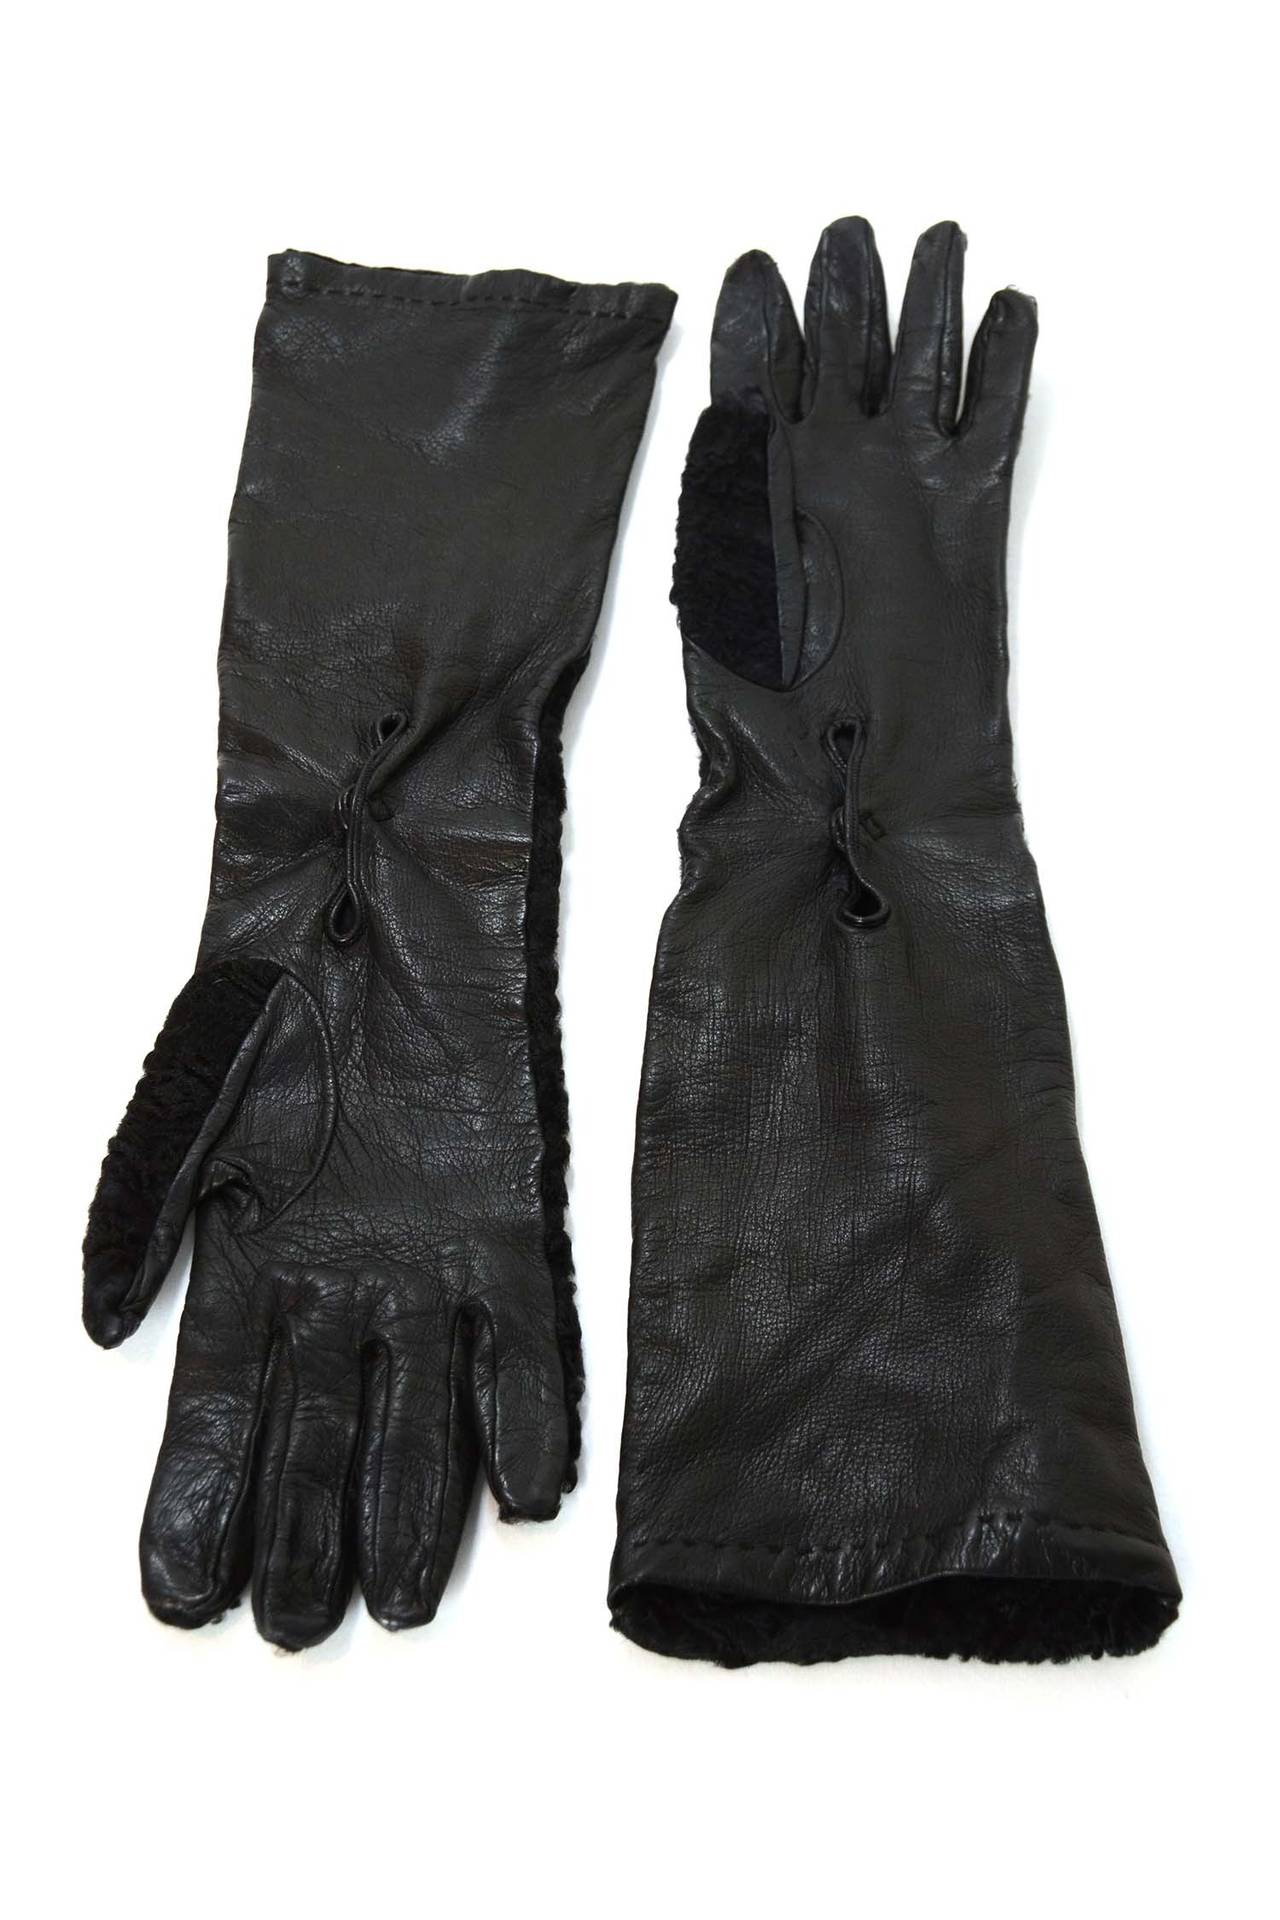 PRADA Black Persian Lamb & Leather Long Gloves sz7 6